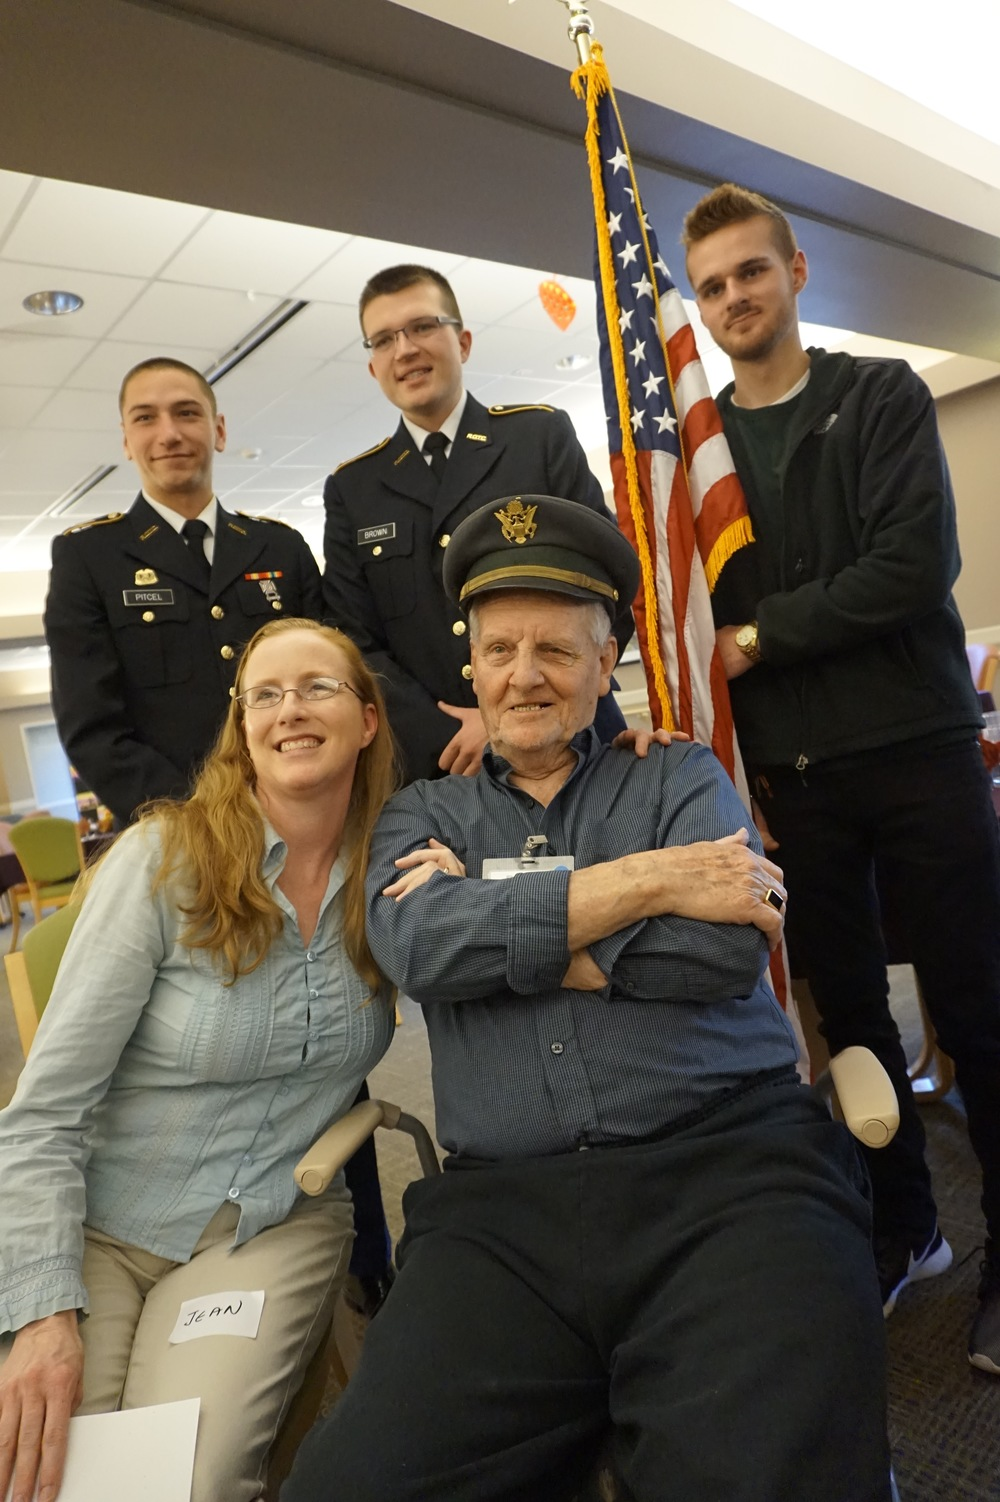 Oakland Centre has many guests who are veterans — we always remember them in special ways.